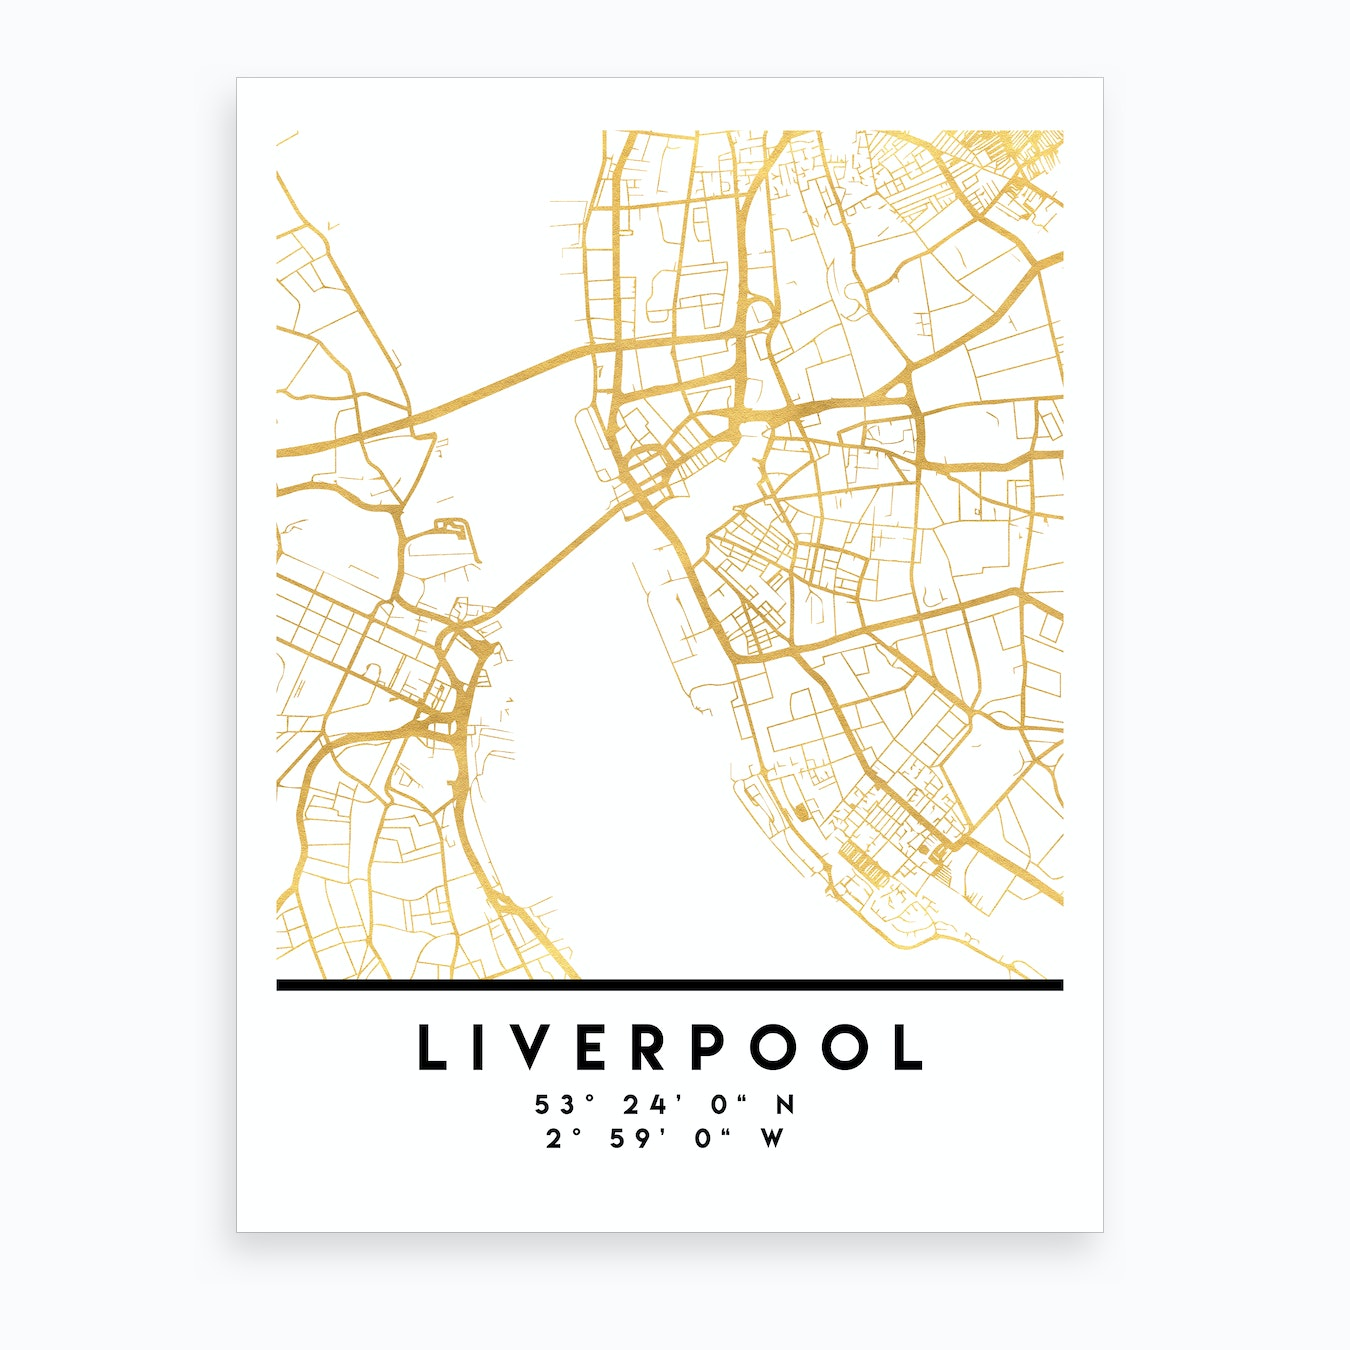 Liverpool England City Street Map Art Print on marylebone map, liverpool england central map, borough map, paddington station map, russell square map, bangkok airport map, leadenhall market map, covent garden map, grosvenor square map, camden town map, east india map, west end map, tower hill map,